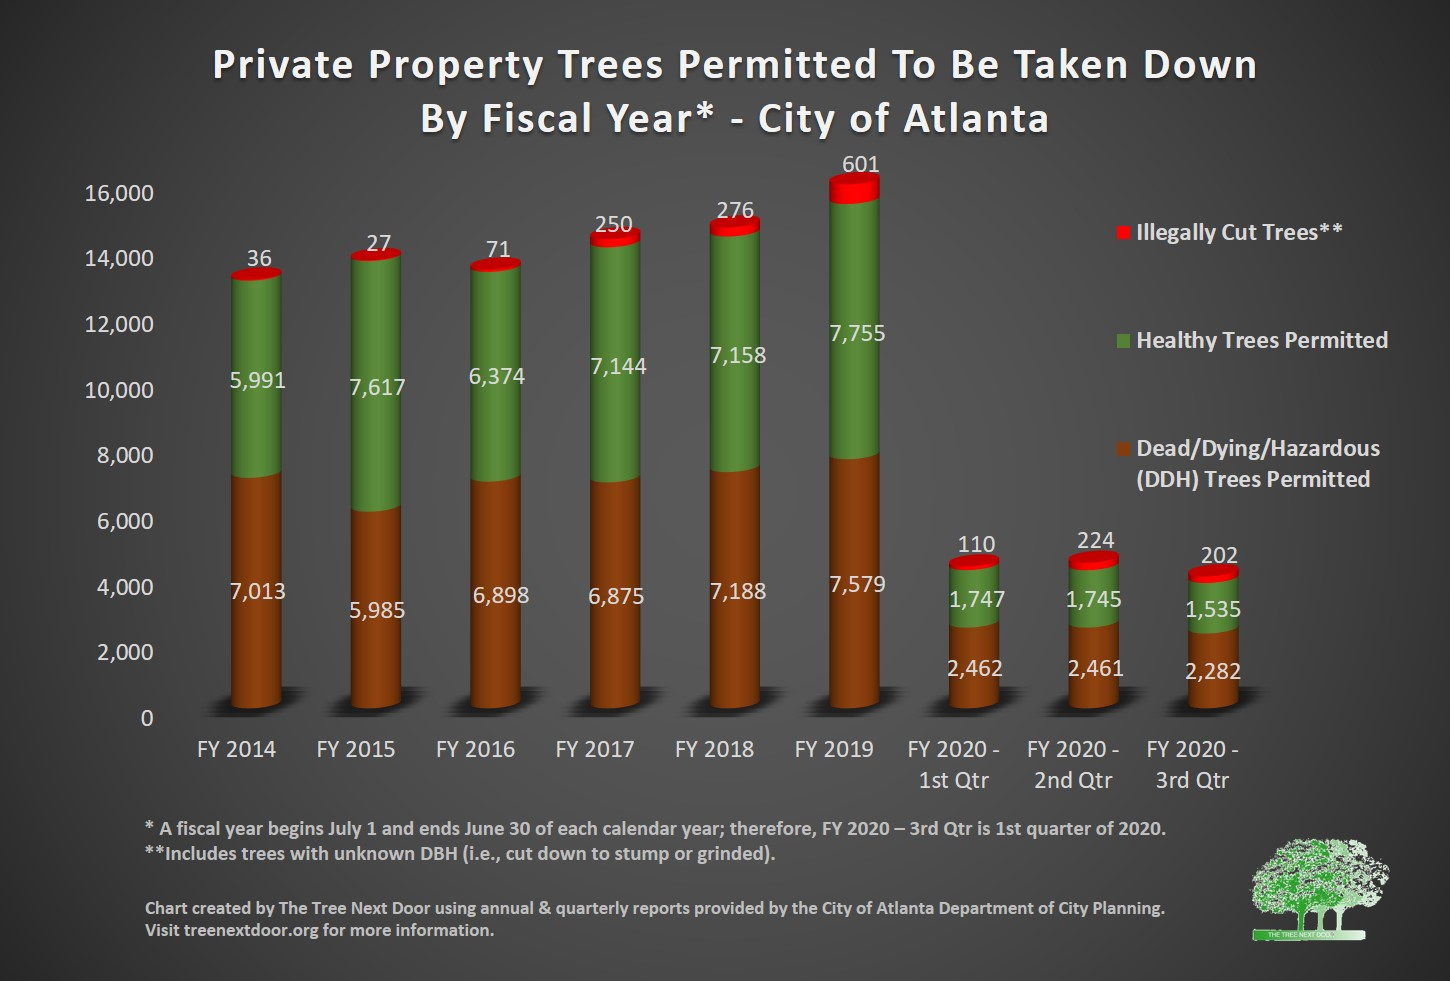 number of permitted trees by type